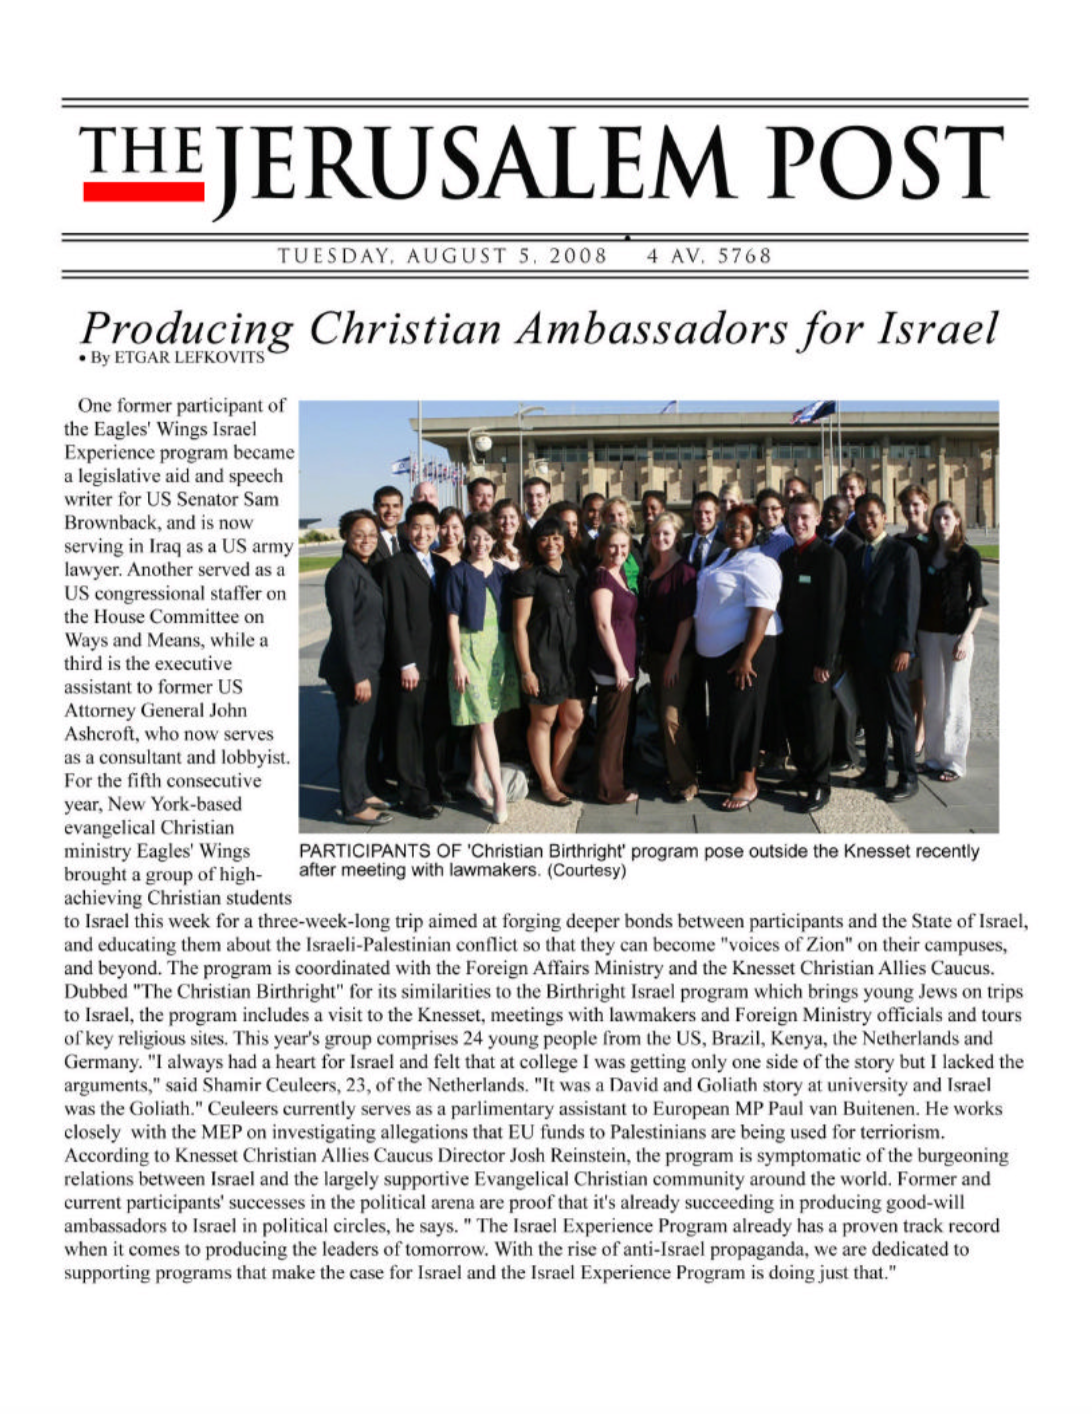 The Israel Experience featured in The Jerusalem Post - 2008